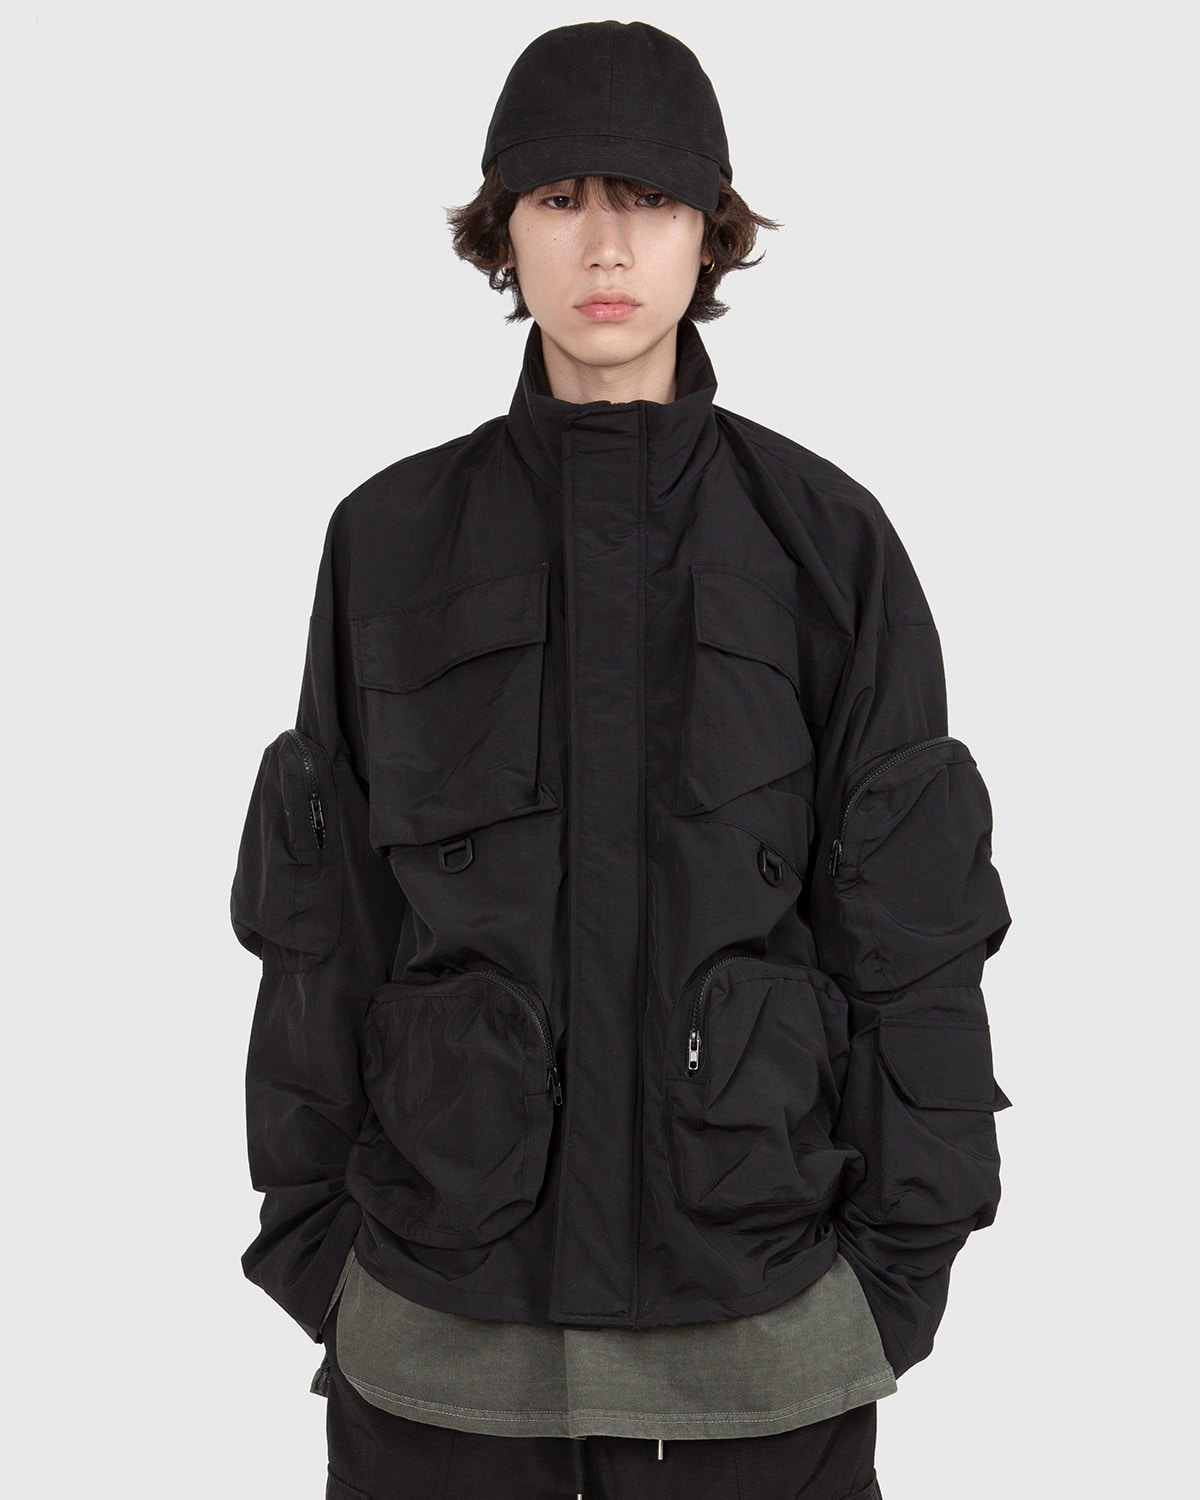 raucohouse-3D MULTI POCKET WINDBREAKER - RAUCO HOUSE♡韓國男裝外套